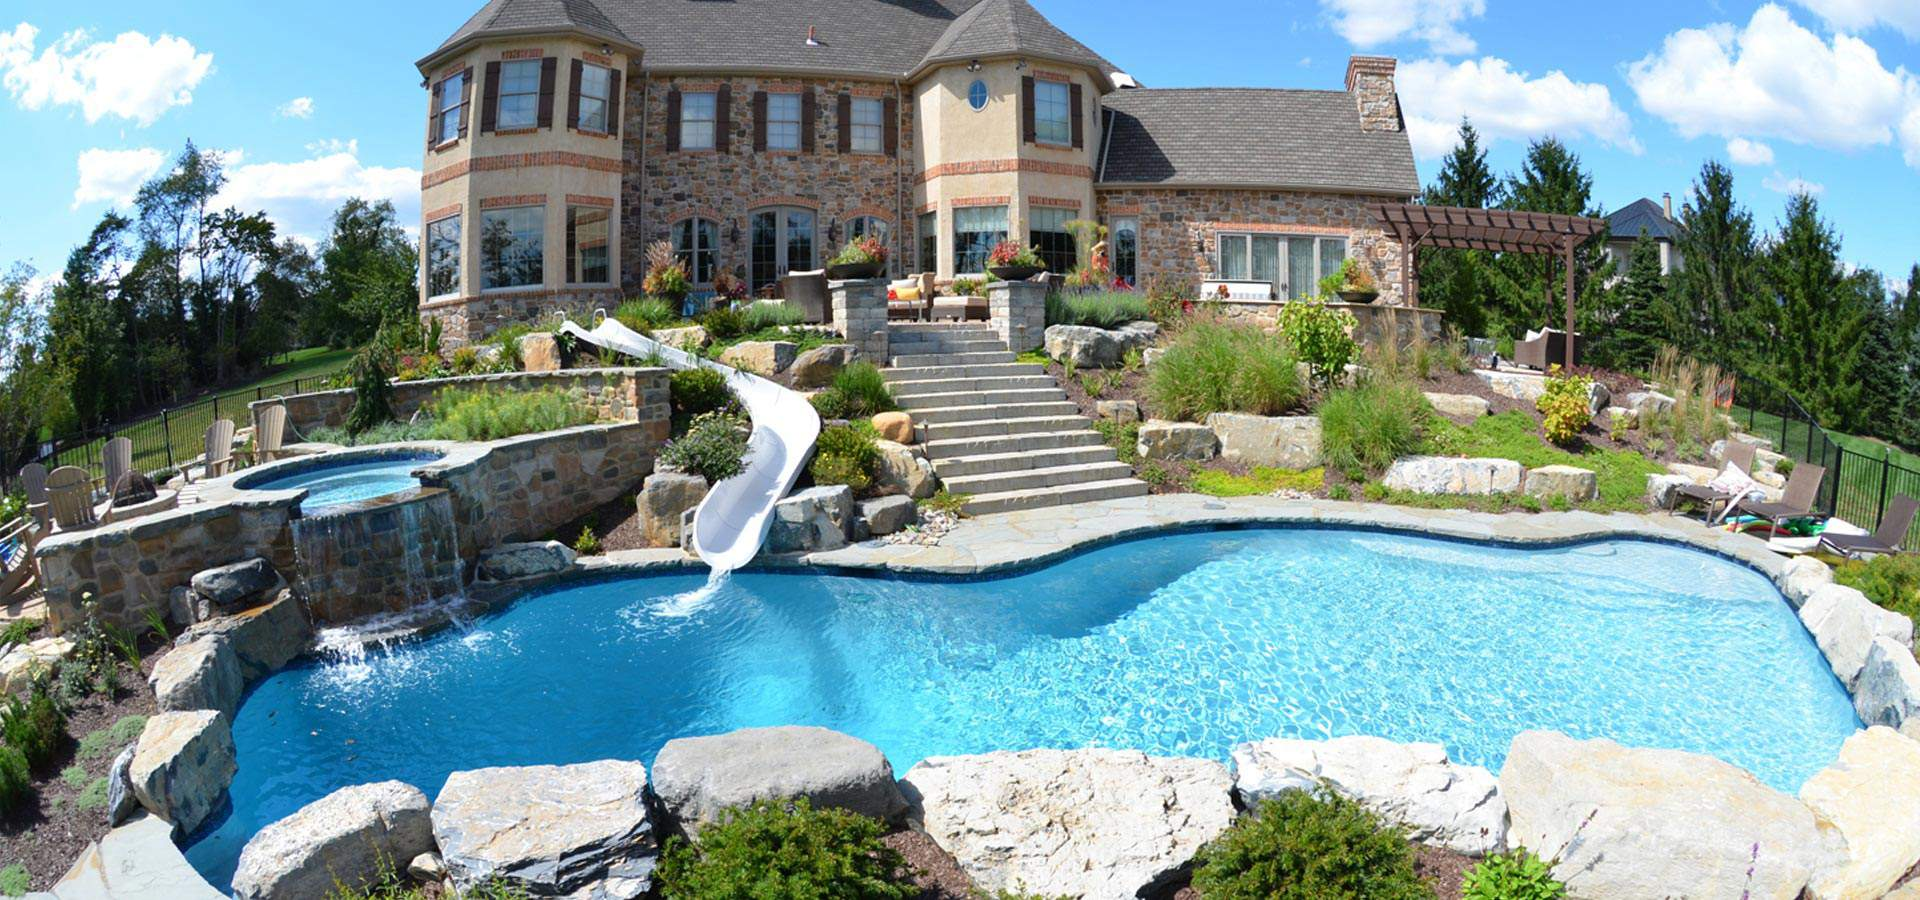 1 Pool Builder In Lehigh Valley PA Best Inground Pools